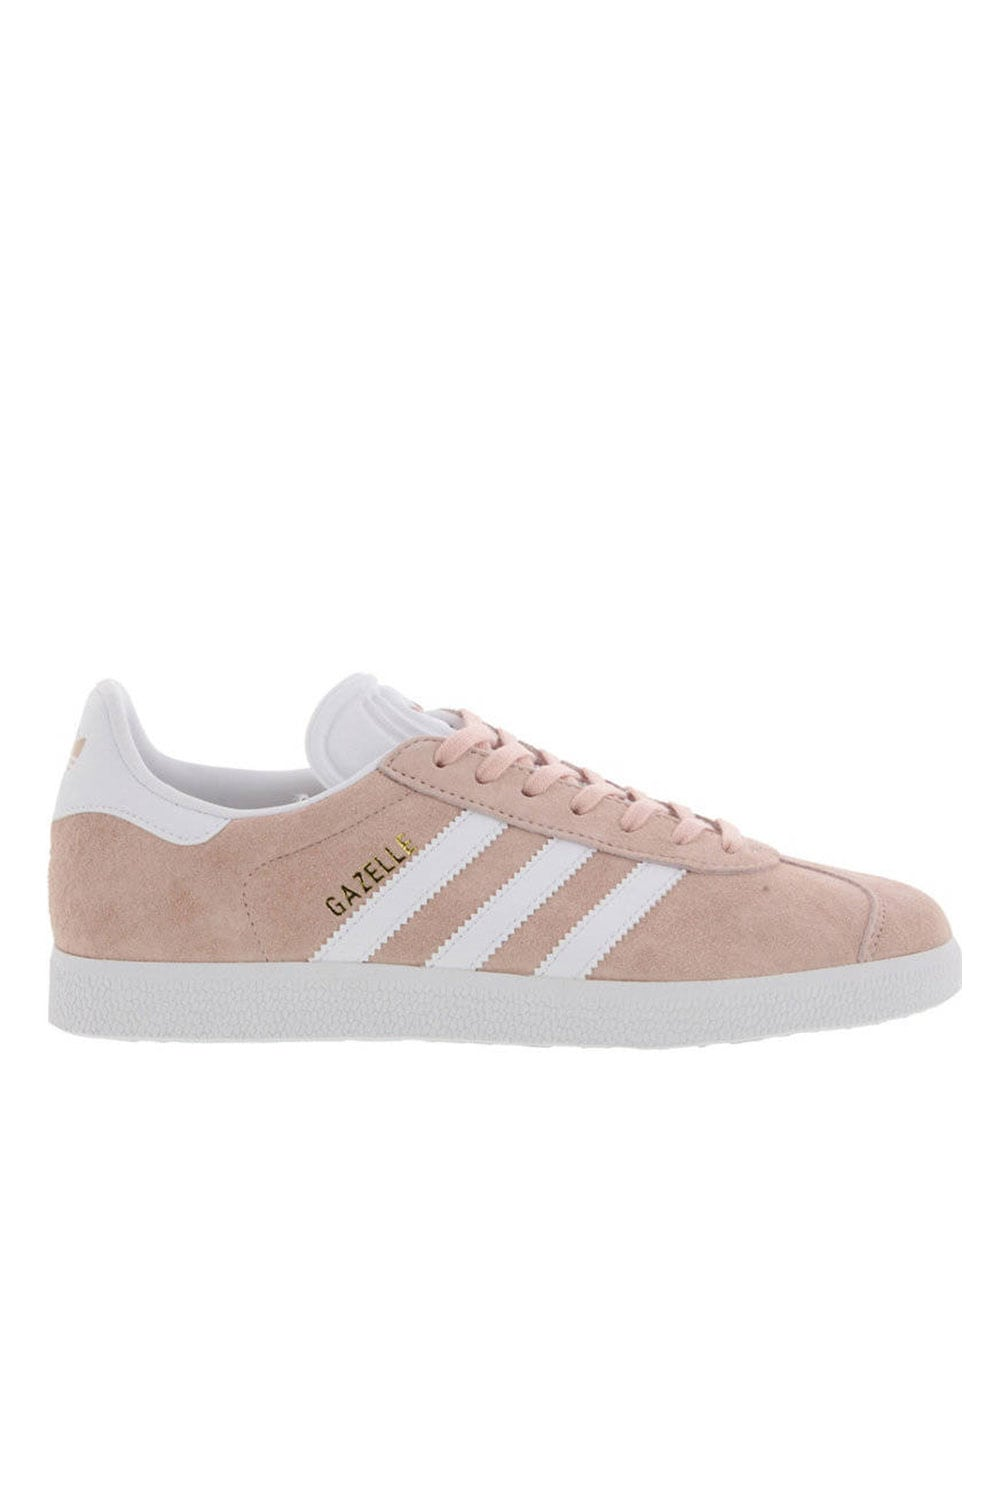 buy online bb86f aef2c Adidas Gazelle - BB5472. -40%